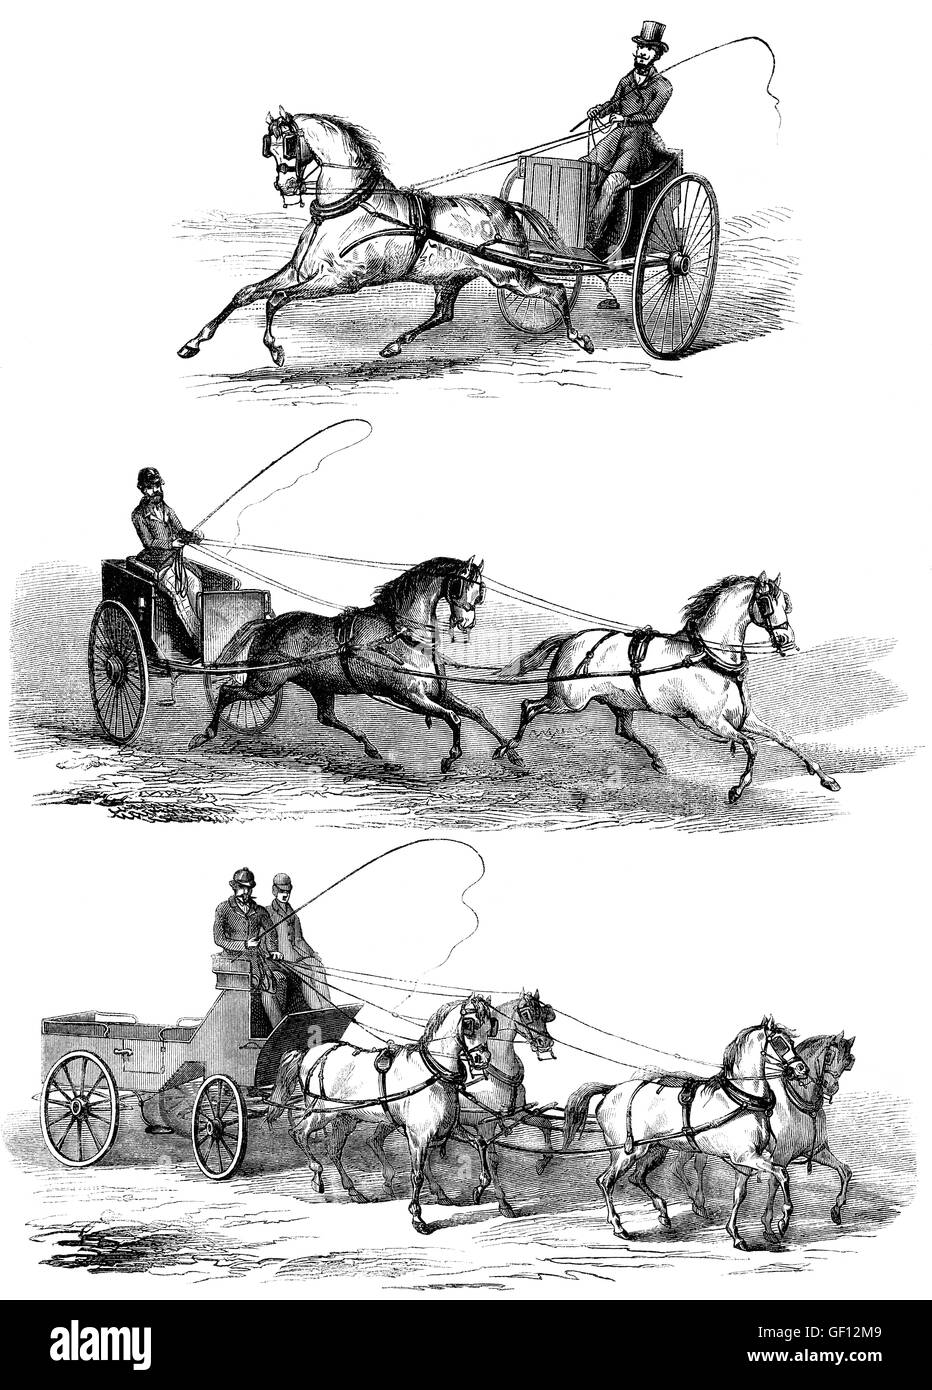 Methods of guiding horses by pulling on its reins - Stock Image